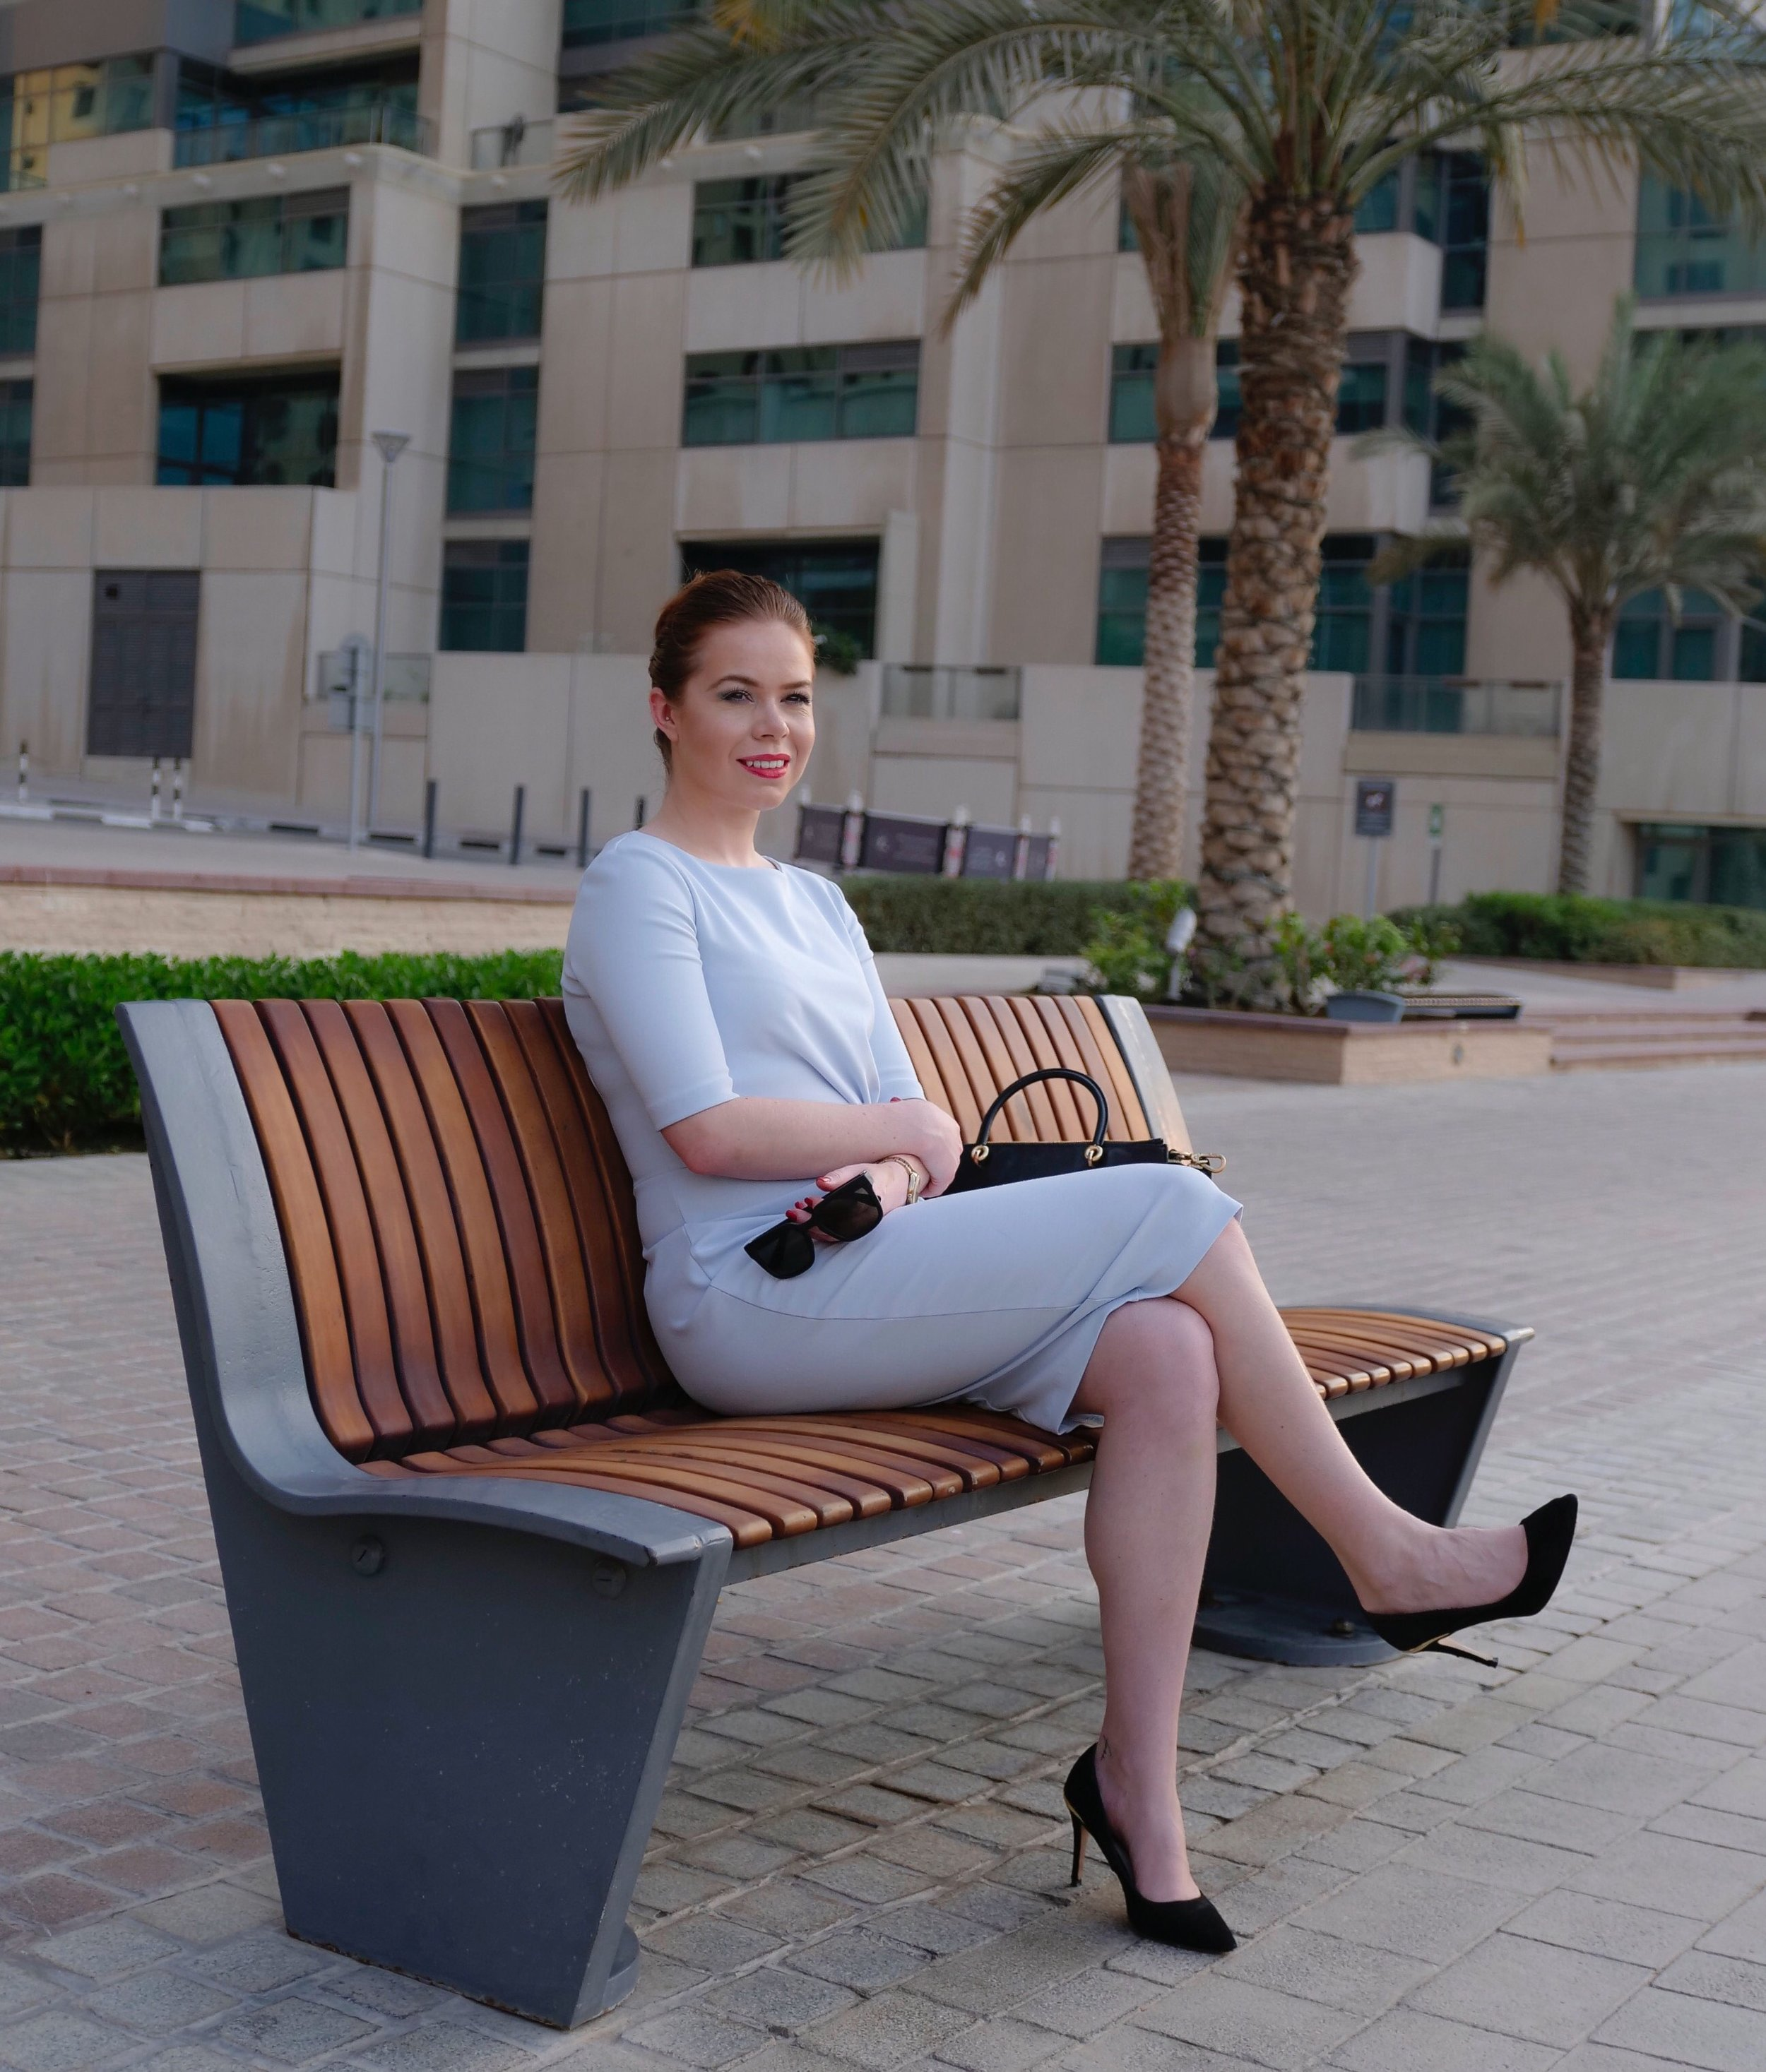 Photos in JBR, Dubai, by Nirmit Gire (@Nirmitgire). For today's office look I'm wearing a classic  ASOS  dress,  Ted Baker  handbag, ASOS black heels and  Michael Kors  watch.